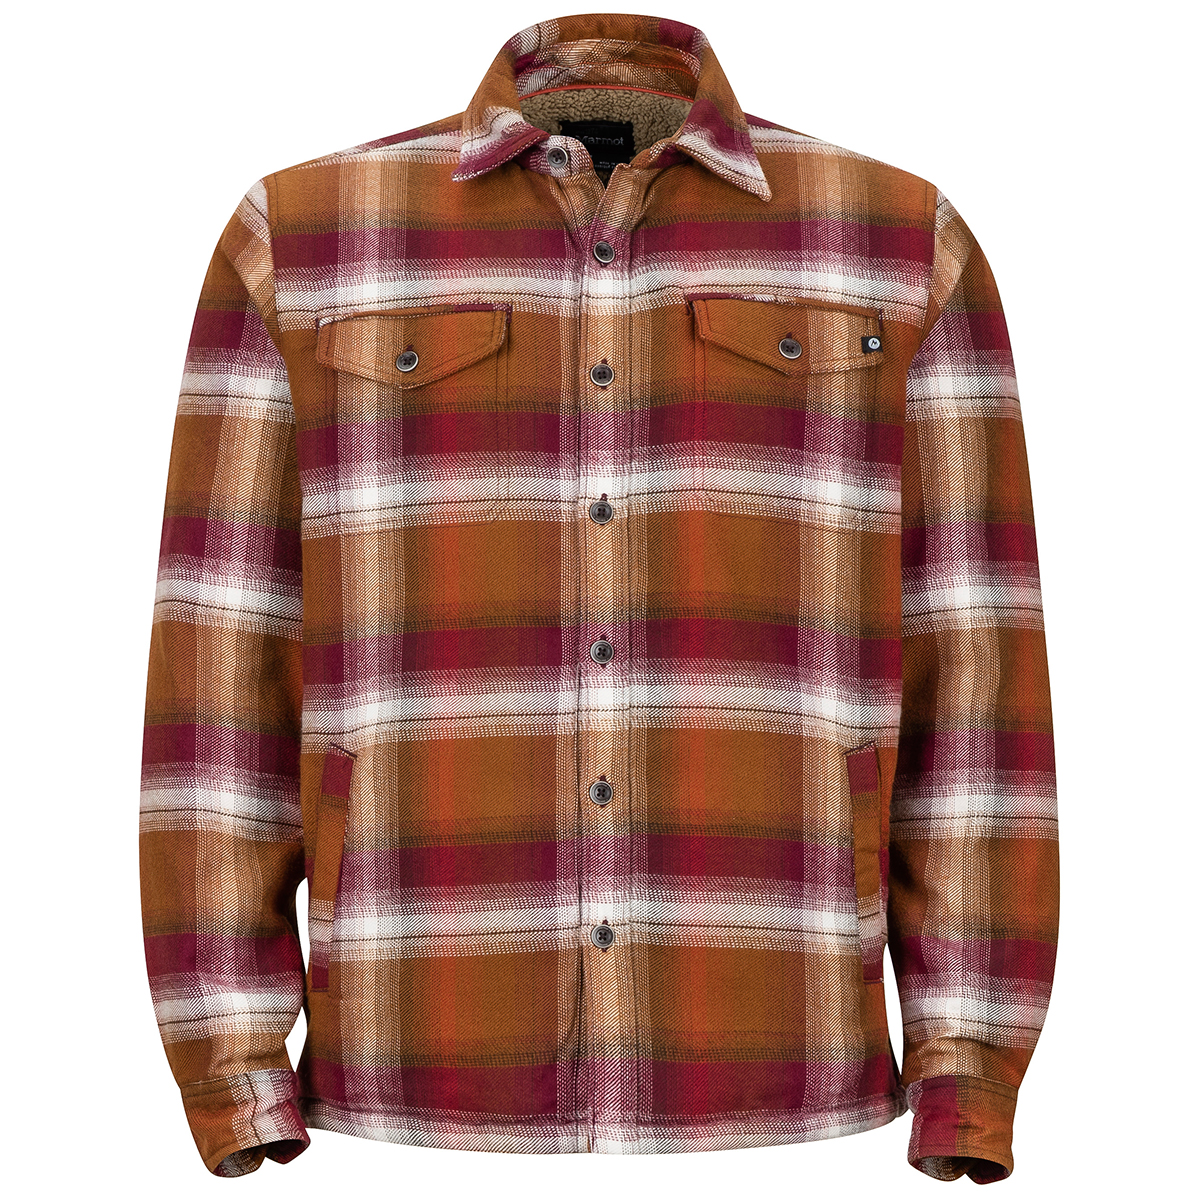 Marmot Men's Ridgefield Long-Sleeve Flannel Shirt - Orange, M